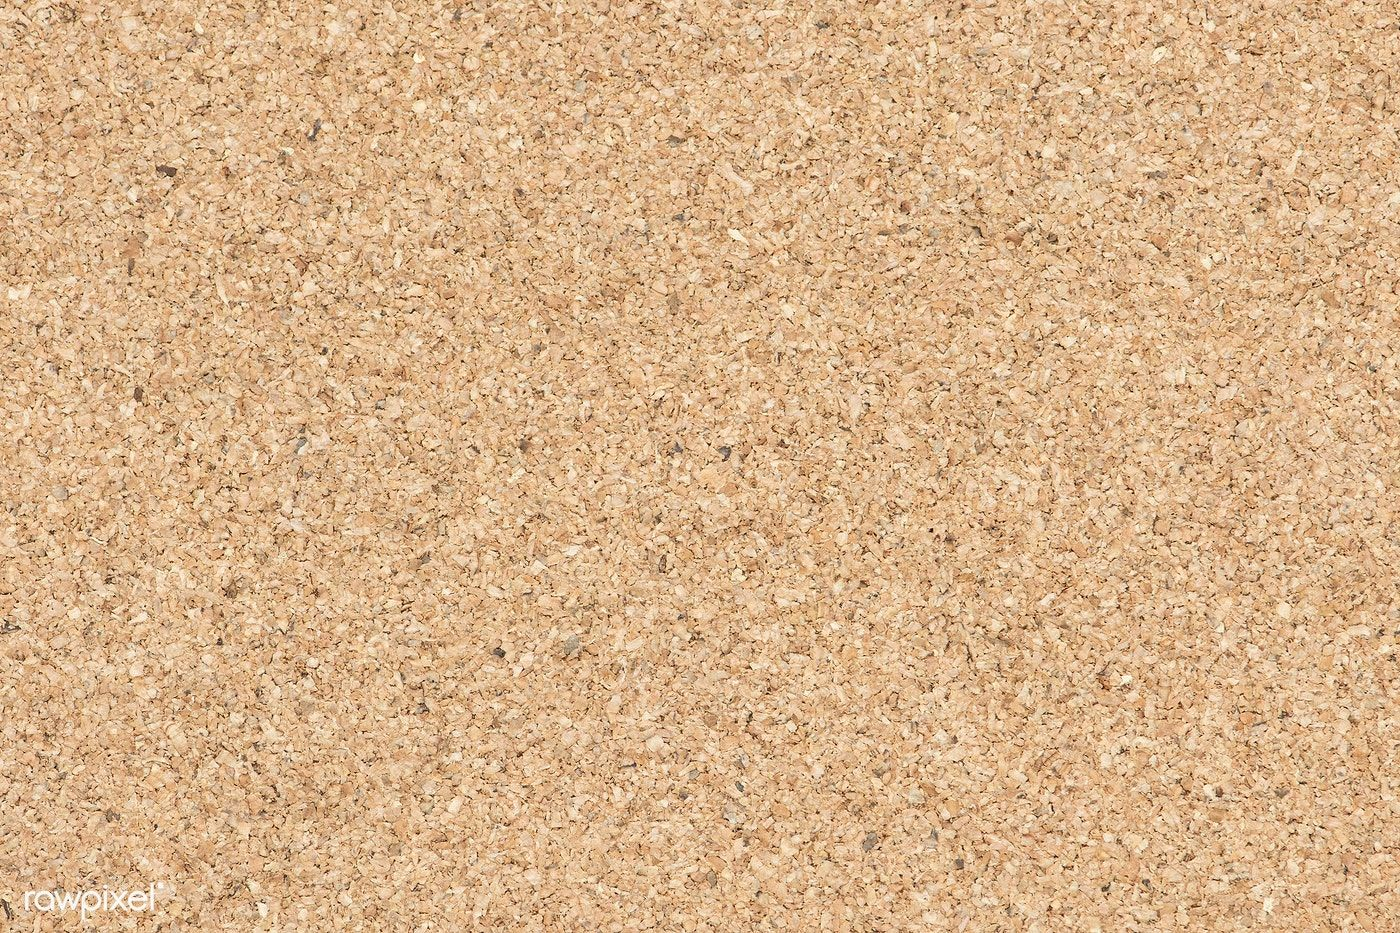 Blank Cork Board Textured Background Free Image By Rawpixel Com Jira